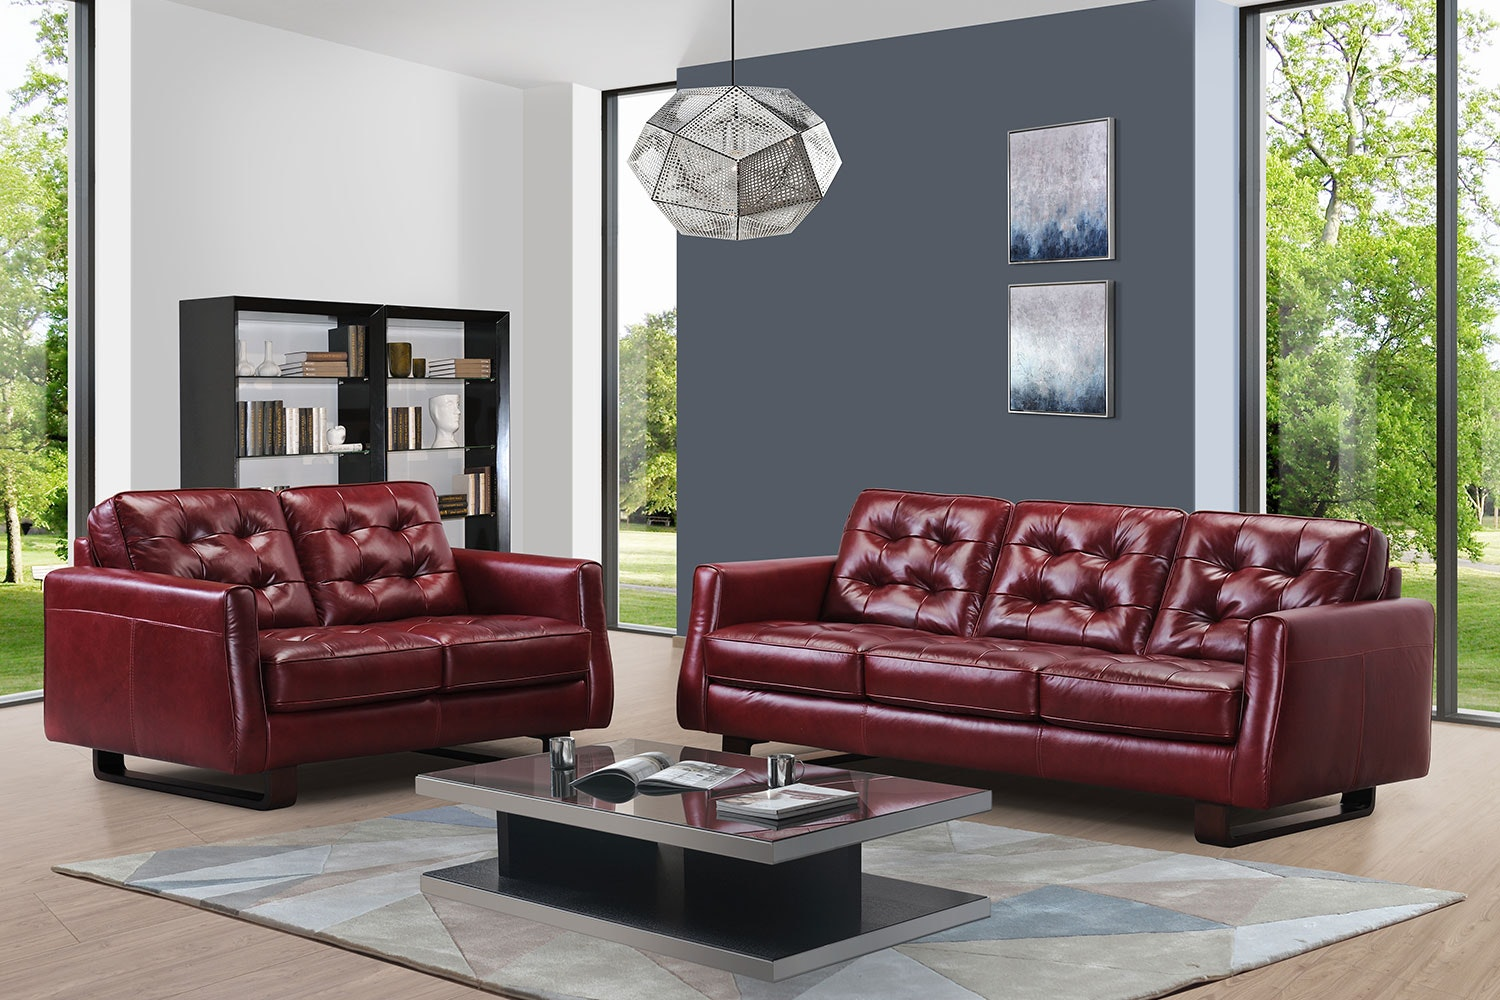 Lounge Suites Couch Ottoman Sofa Packages Harvey